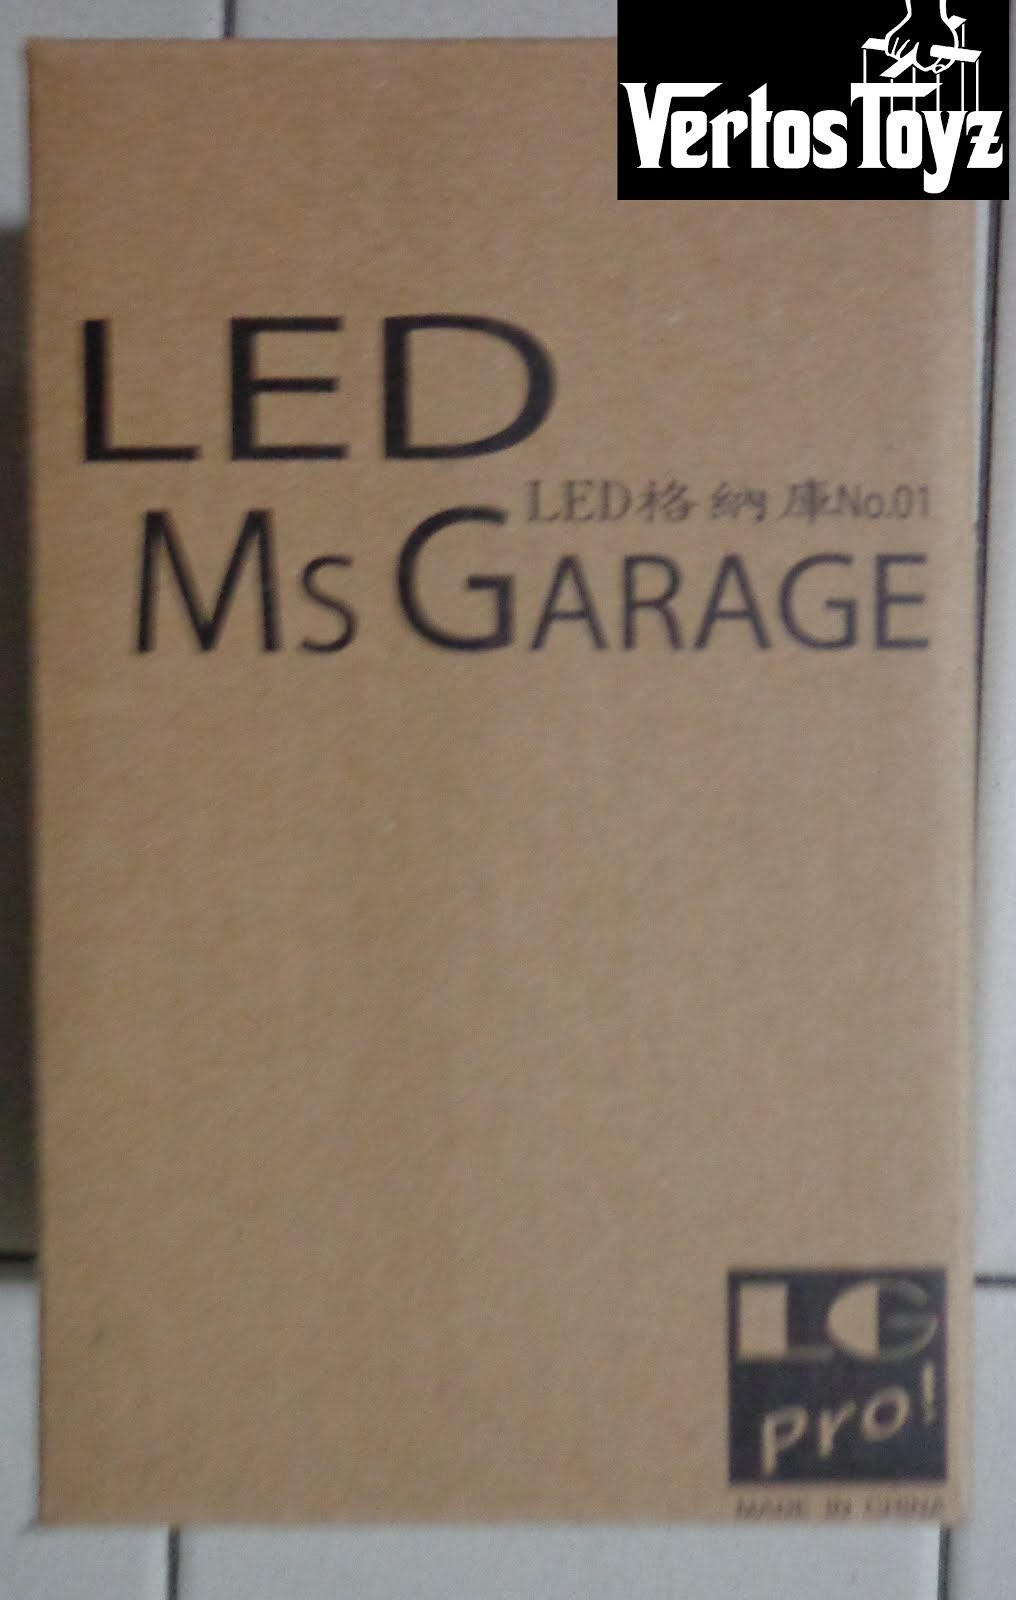 In Stock Lg Pro Ms Garage pro.. Black, Grey and Gold